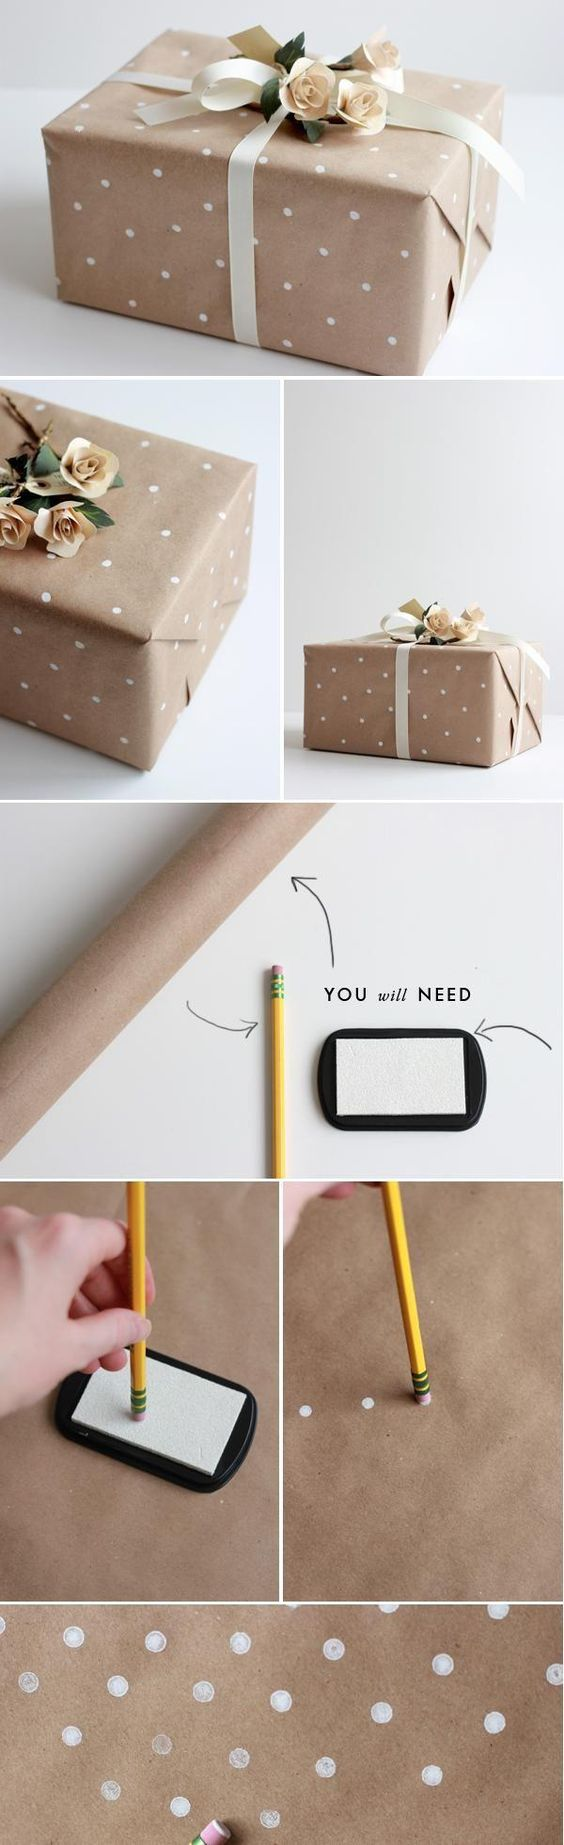 DIY gift wraping